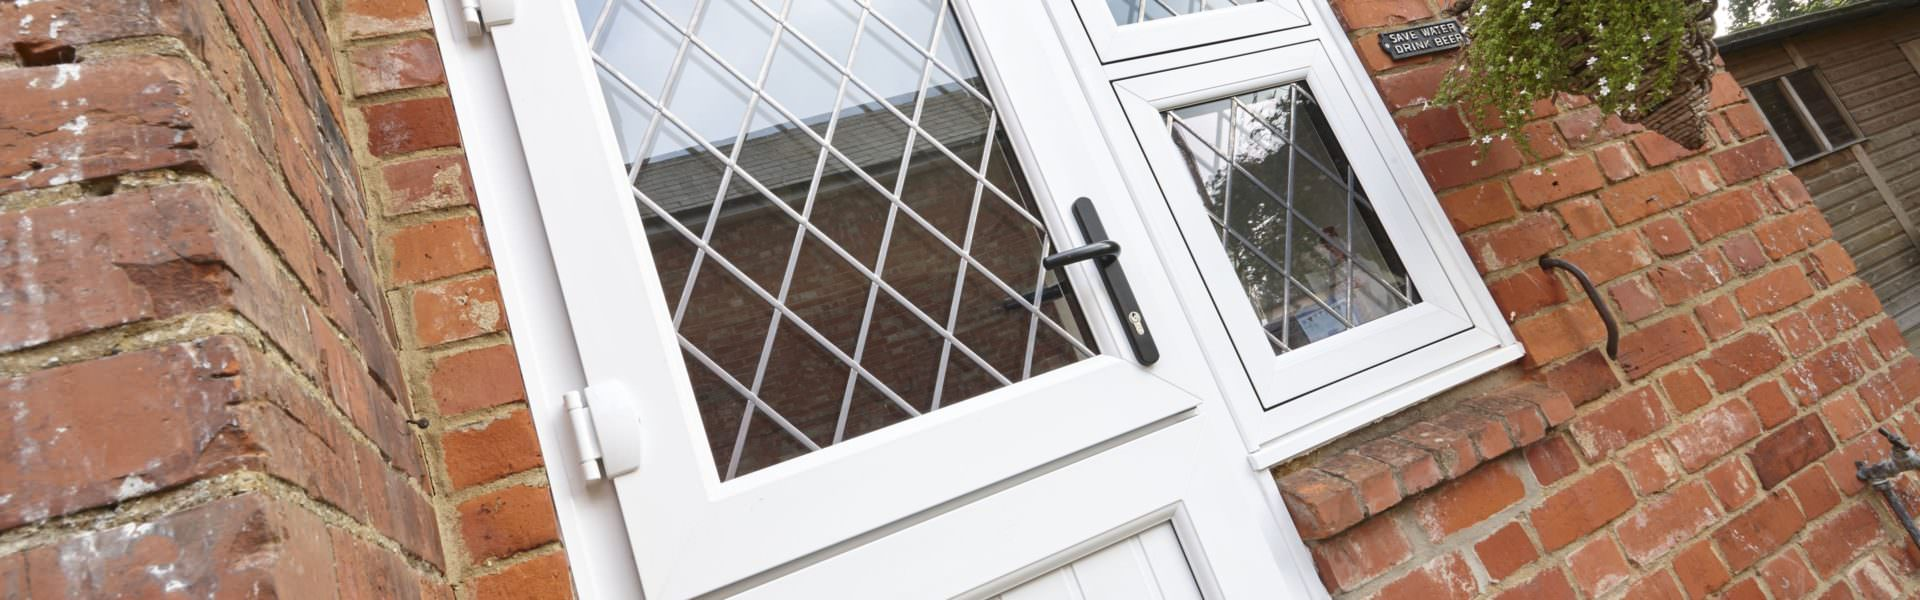 upvc stable doors coventry